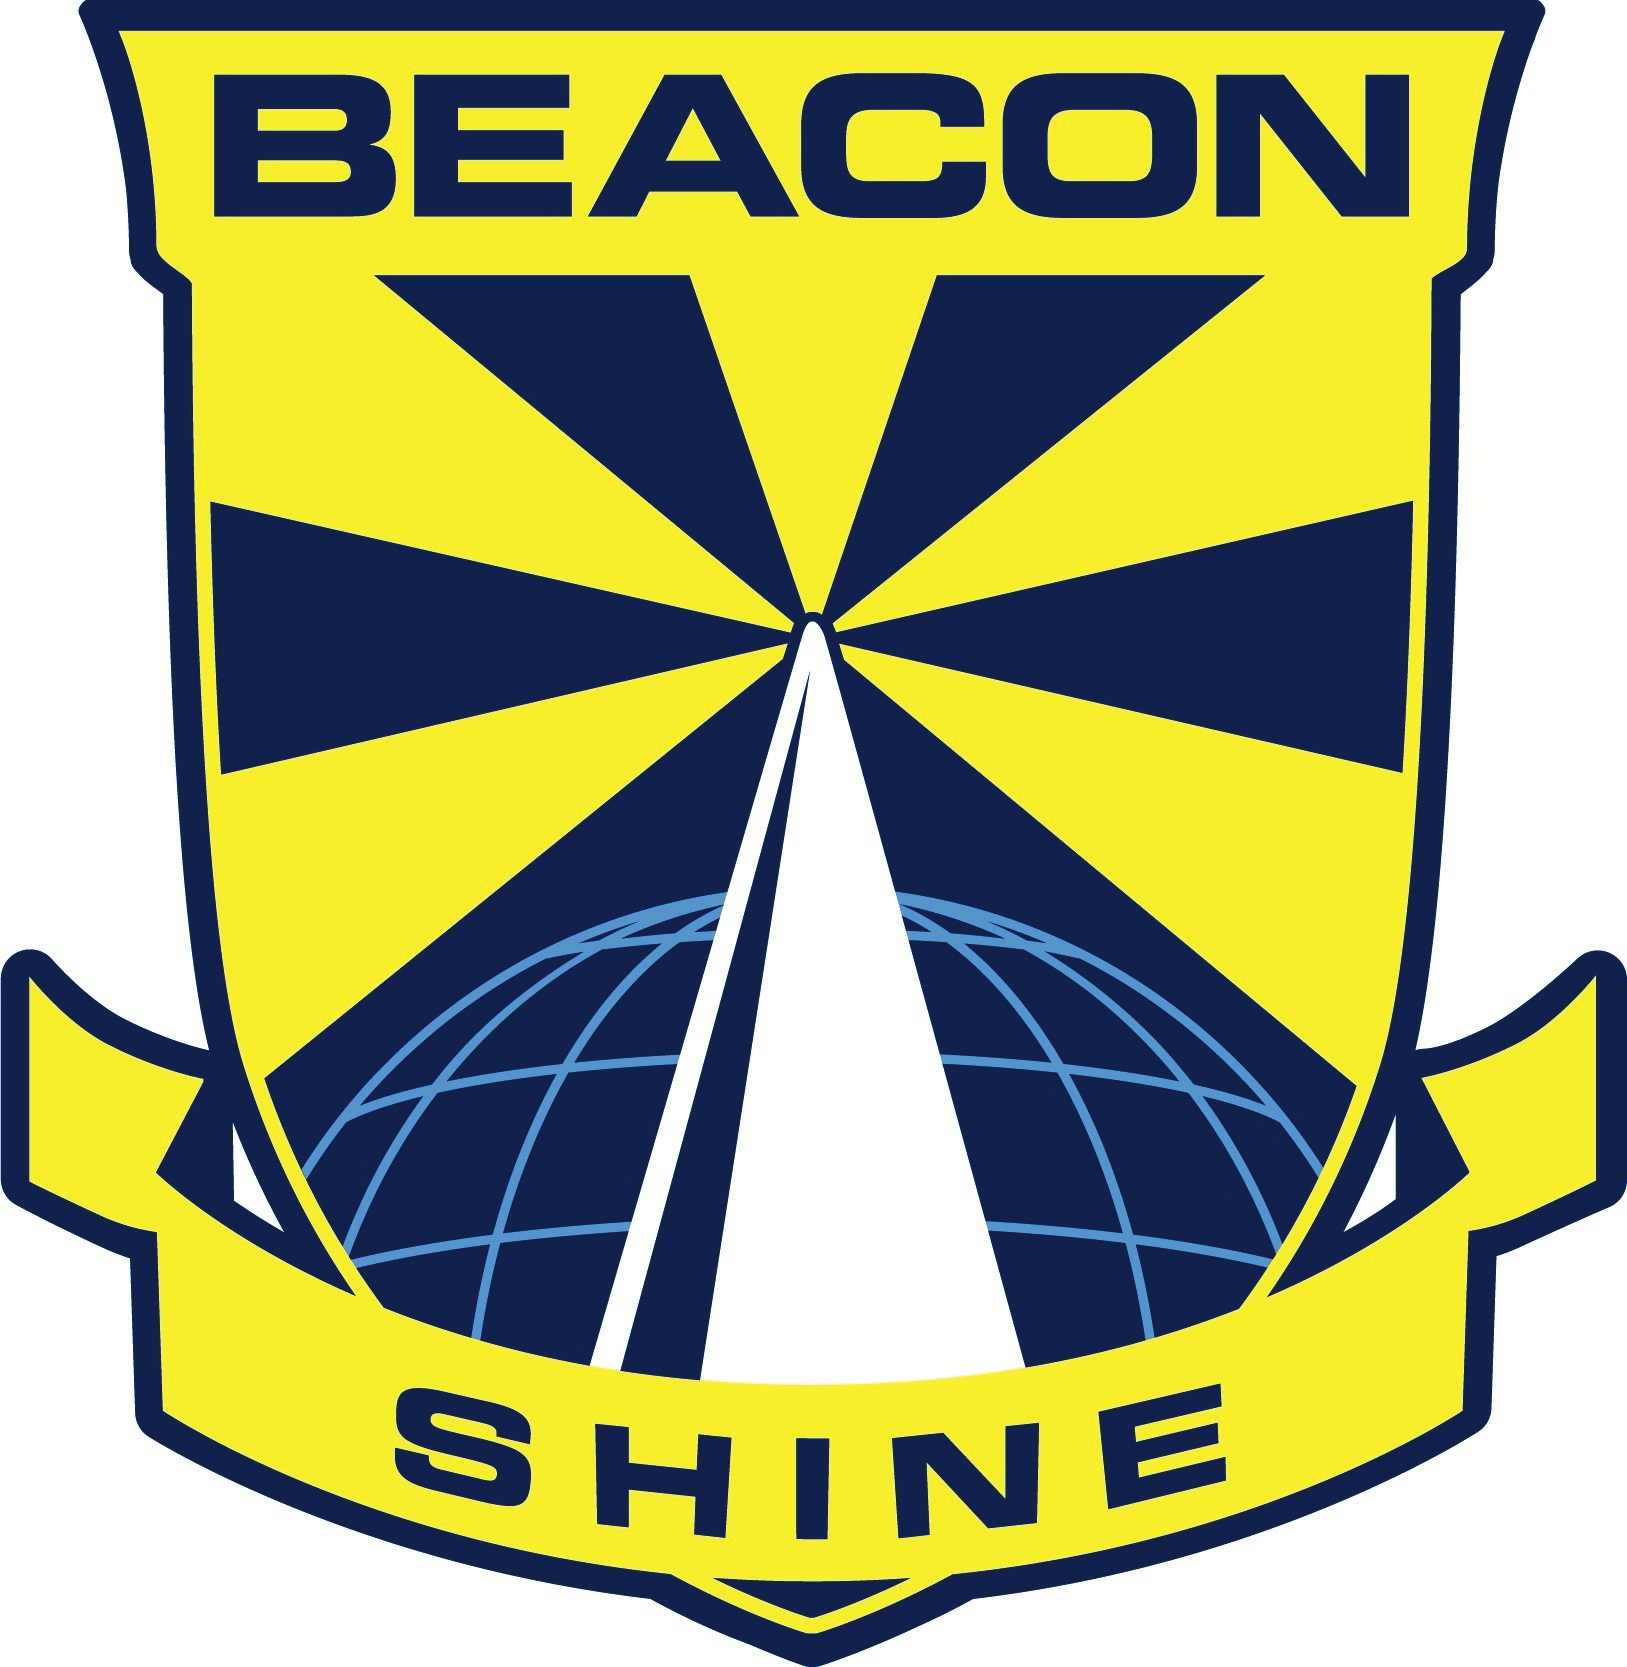 Official school crest for Beacon Primary School.